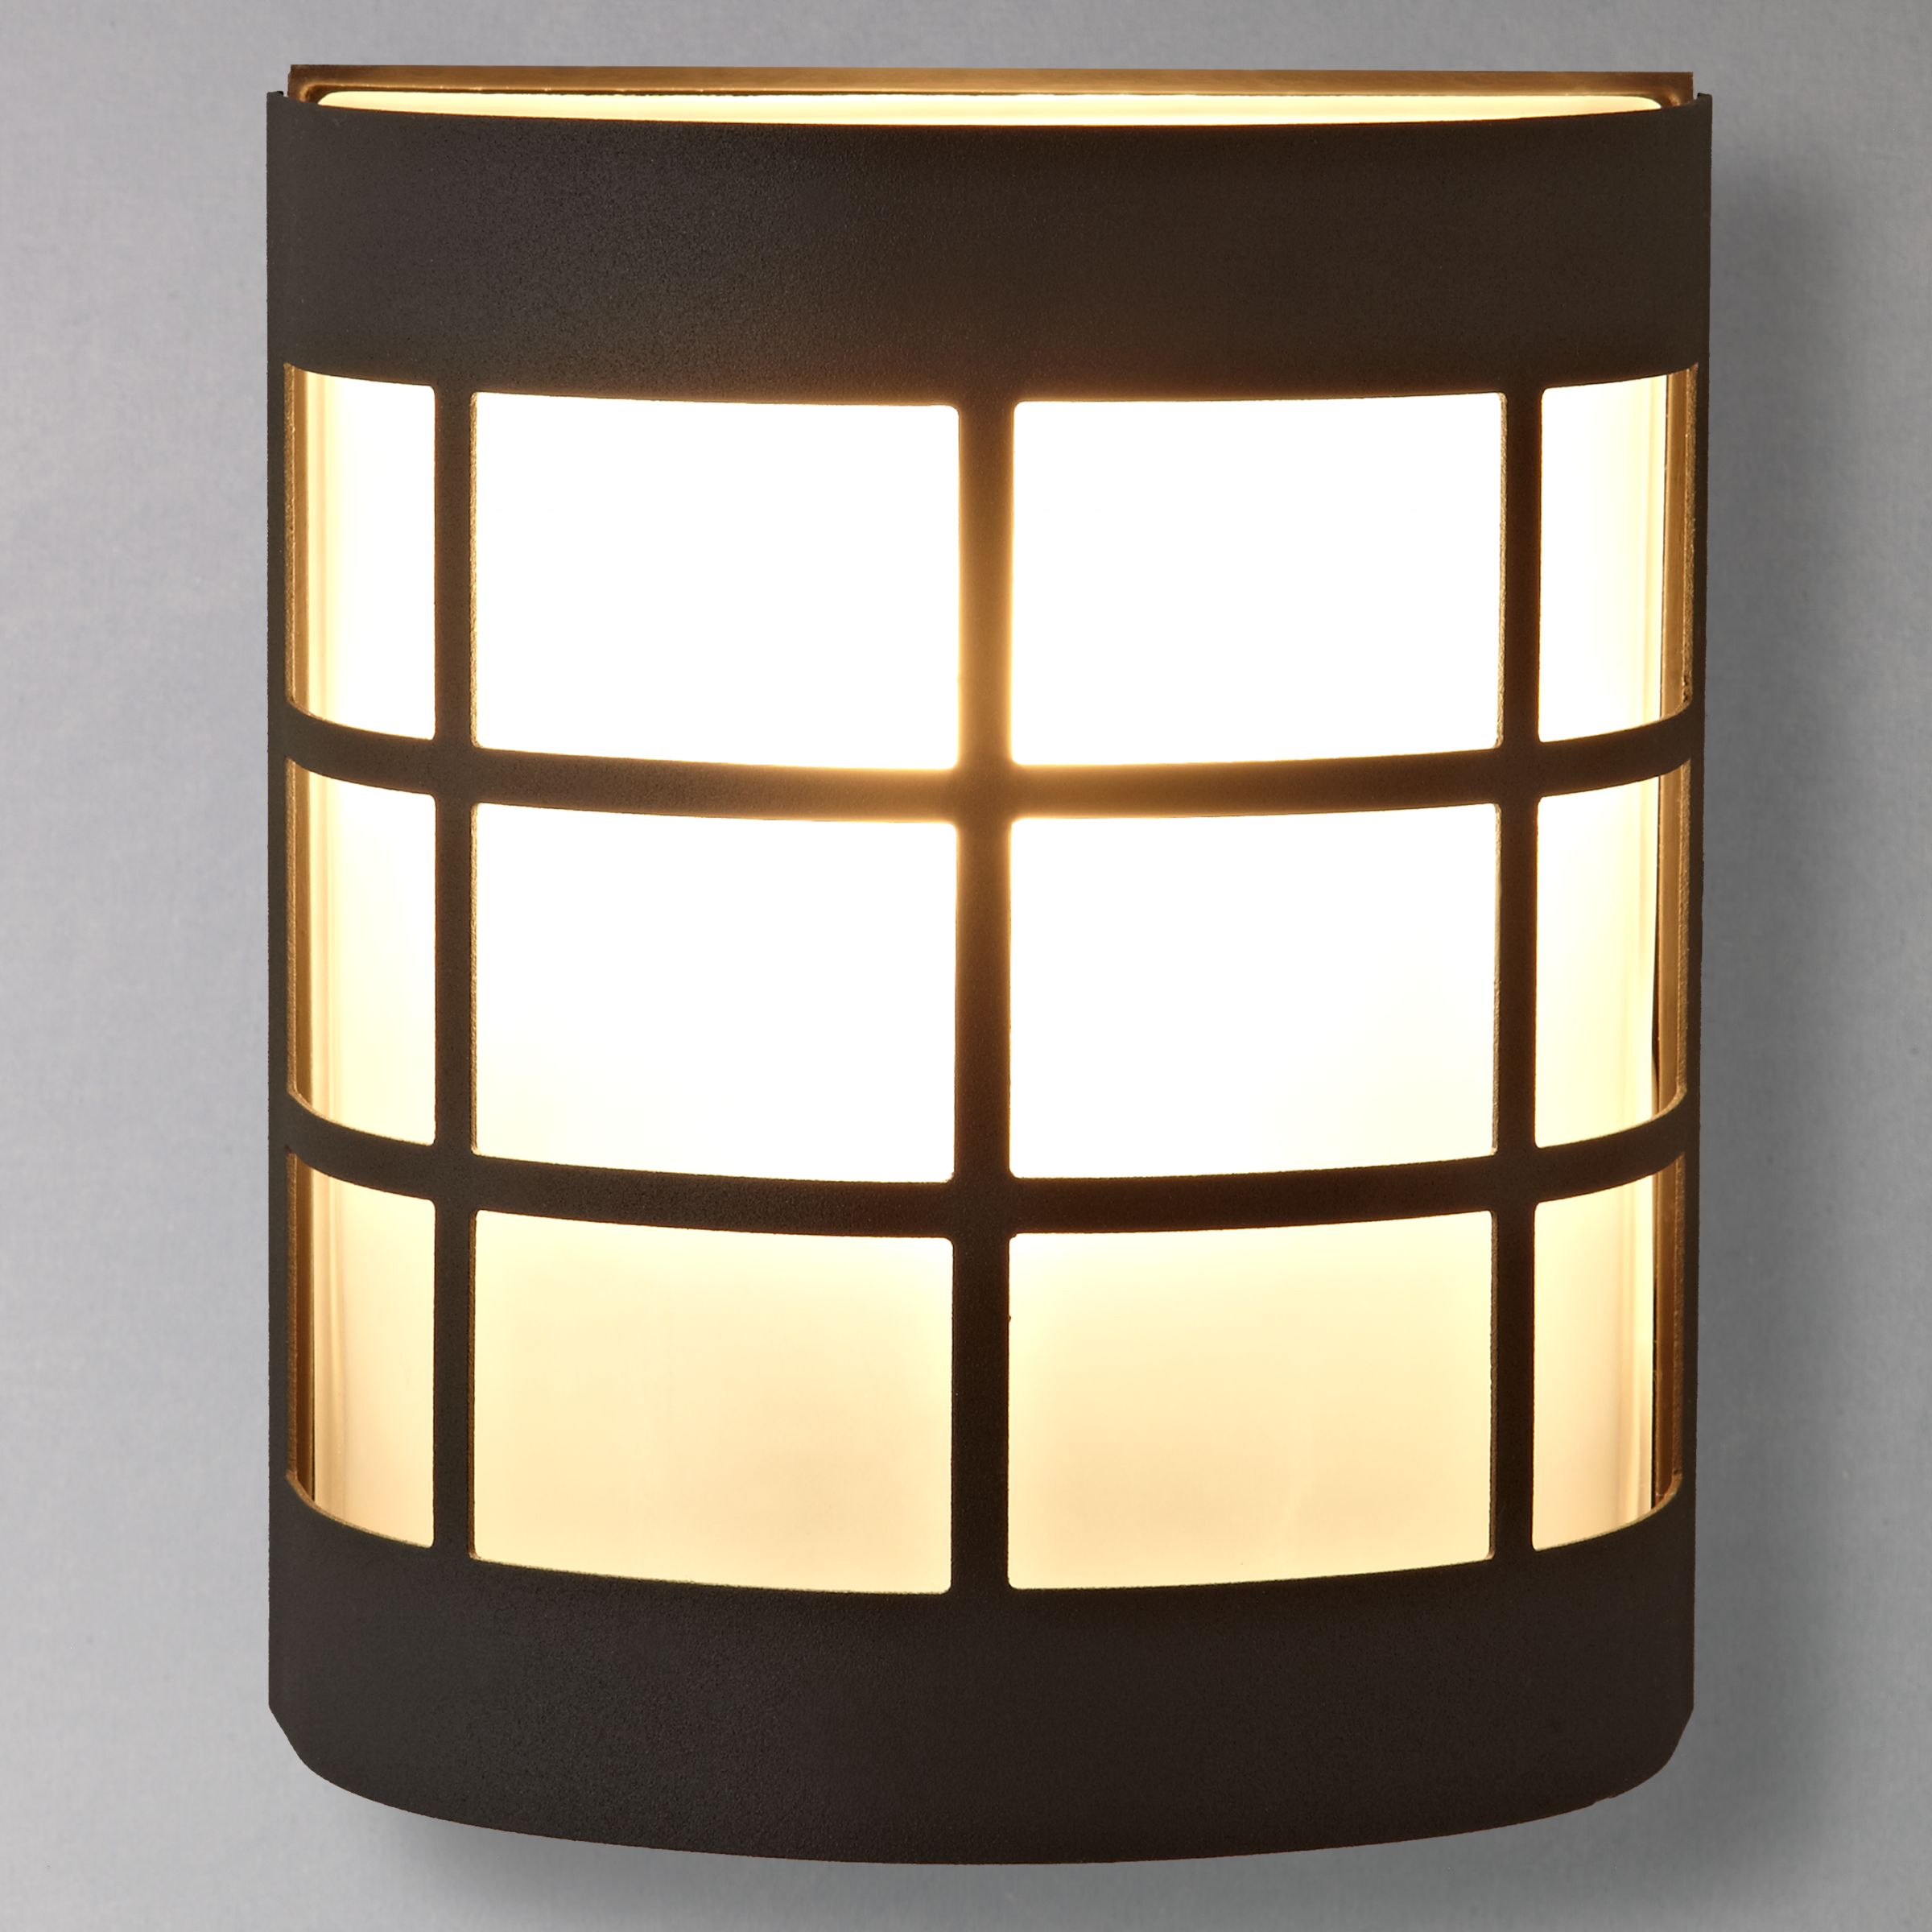 Wall Mounted Lamps John Lewis : Buy John Lewis Classic Canterbury Wall Light John Lewis